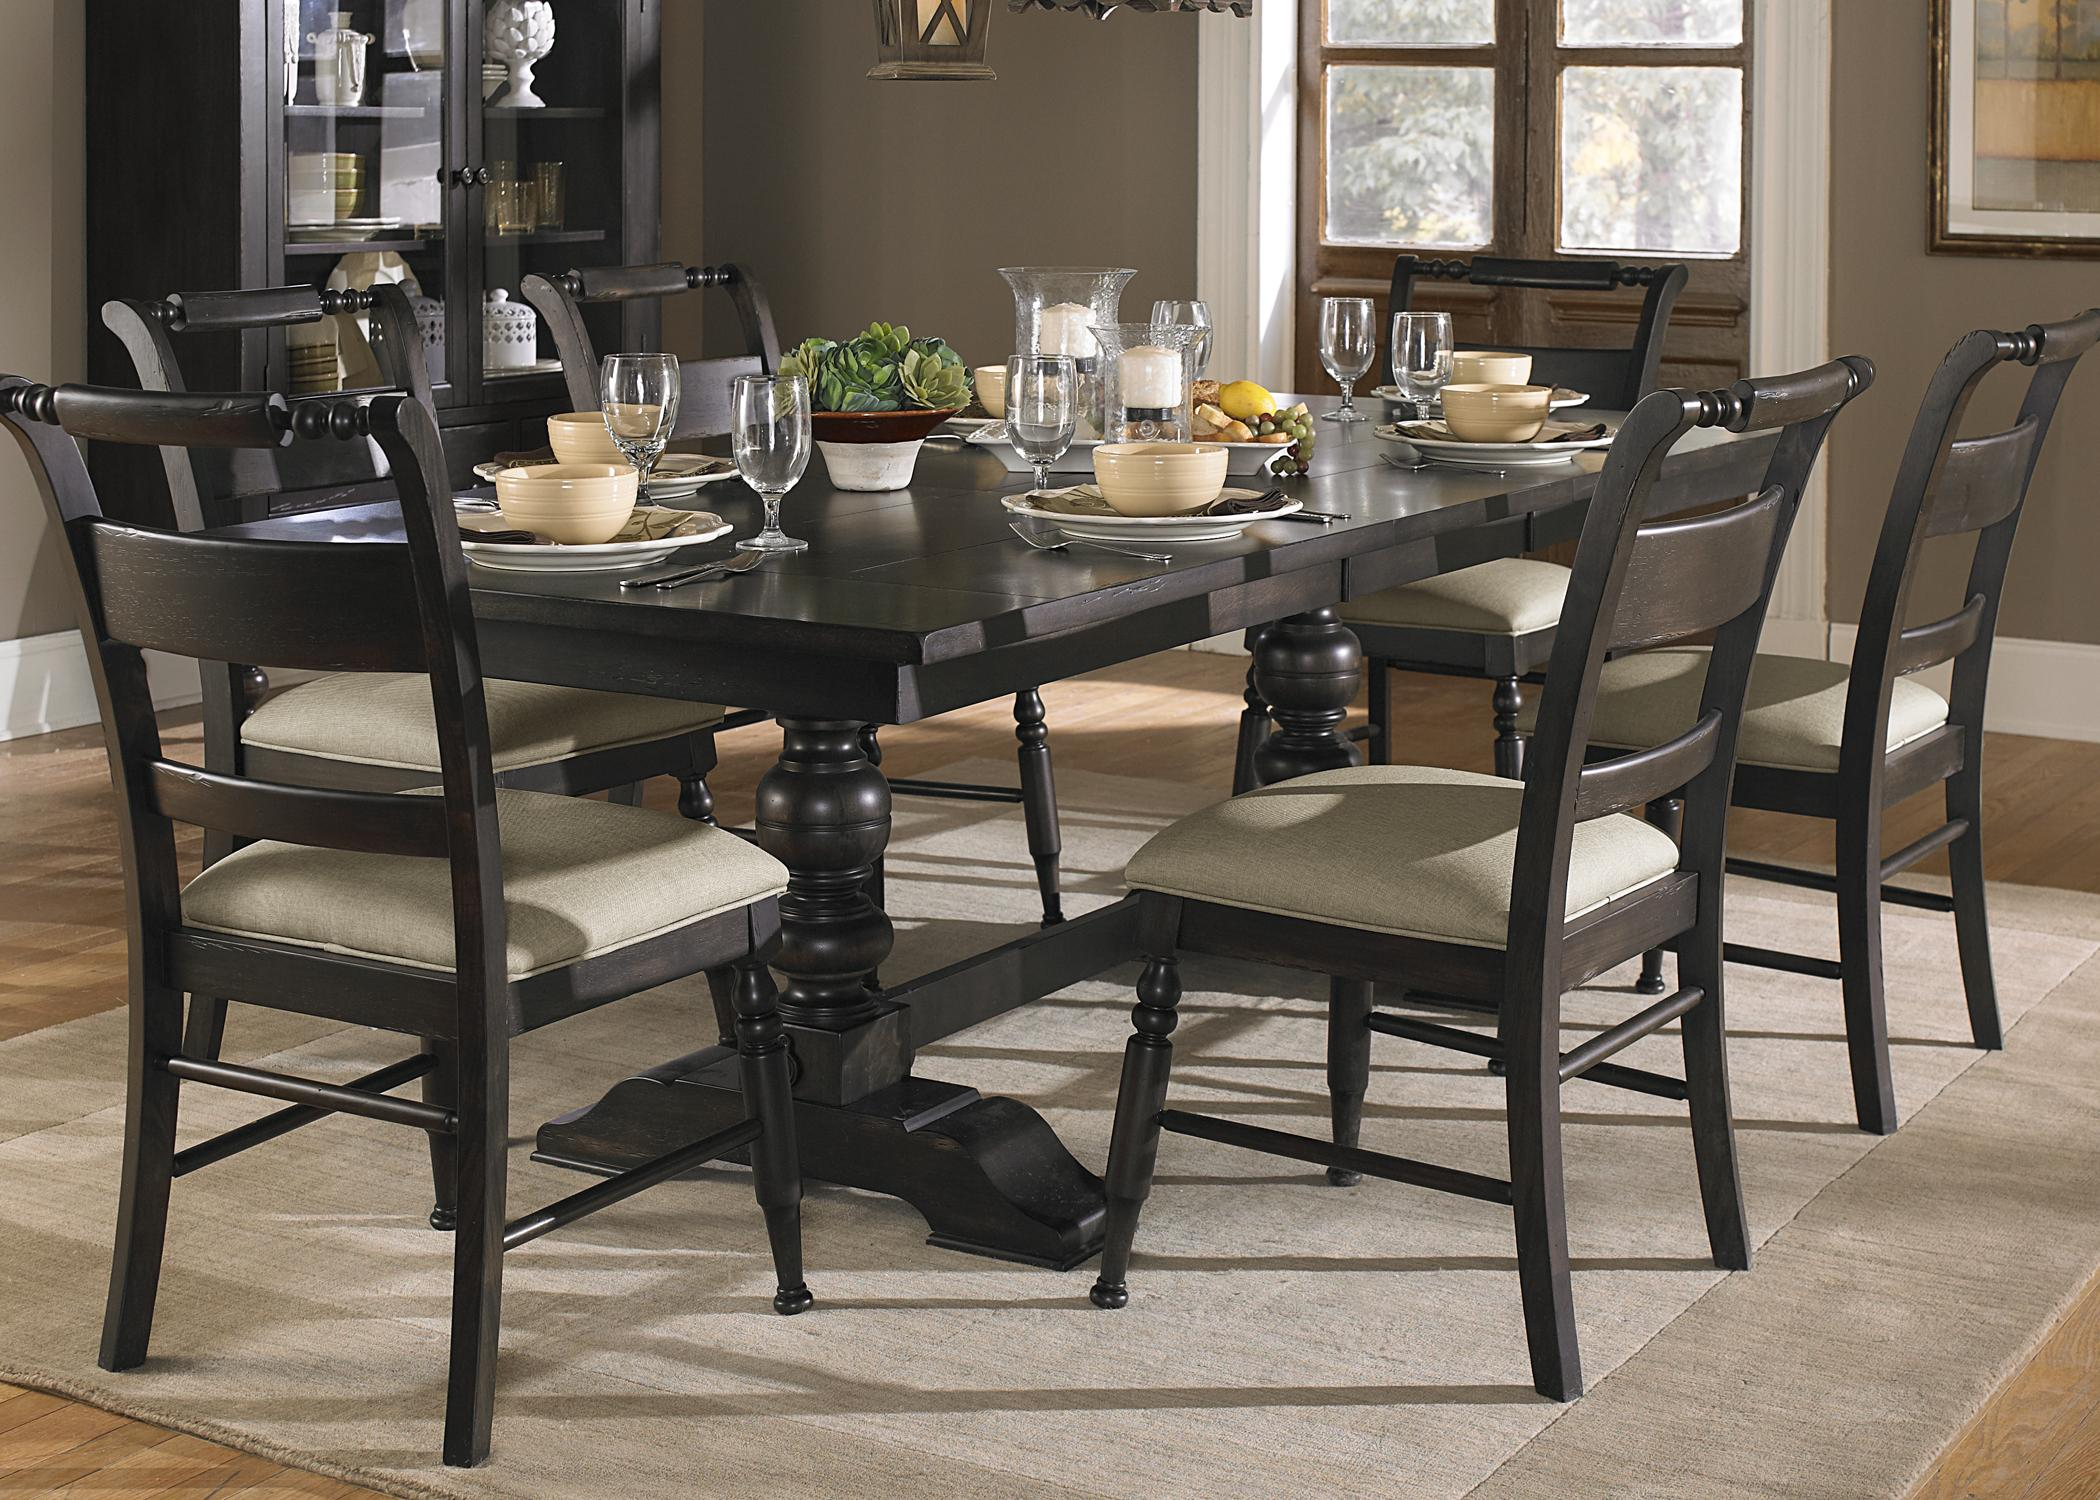 7 Piece Trestle Dining Room Table Set by Liberty Furniture